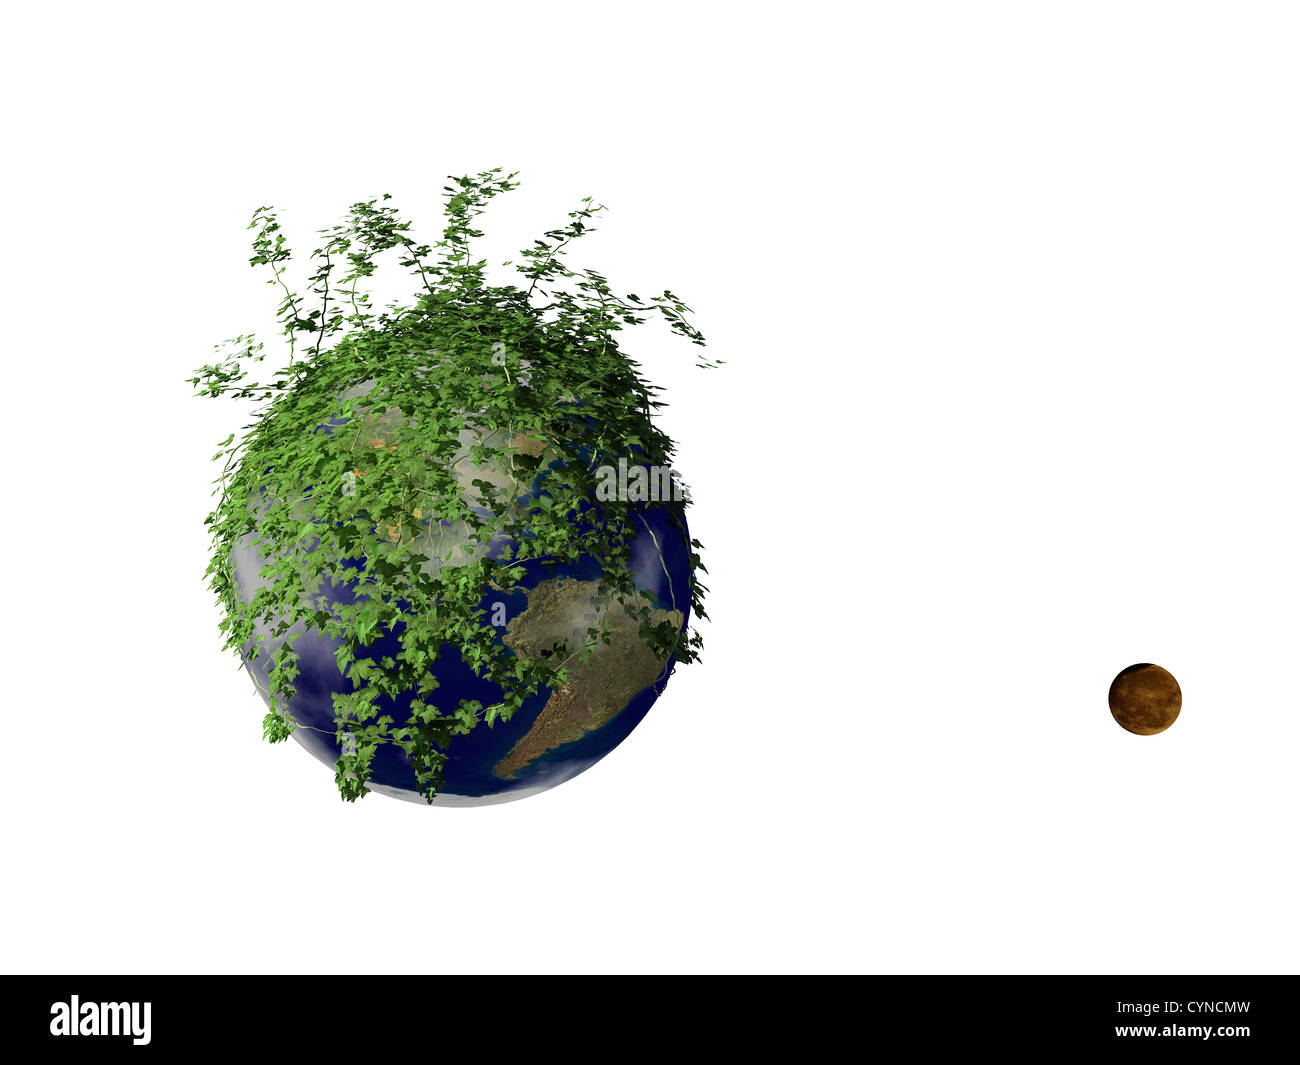 plant world stockfotos plant world bilder alamy. Black Bedroom Furniture Sets. Home Design Ideas